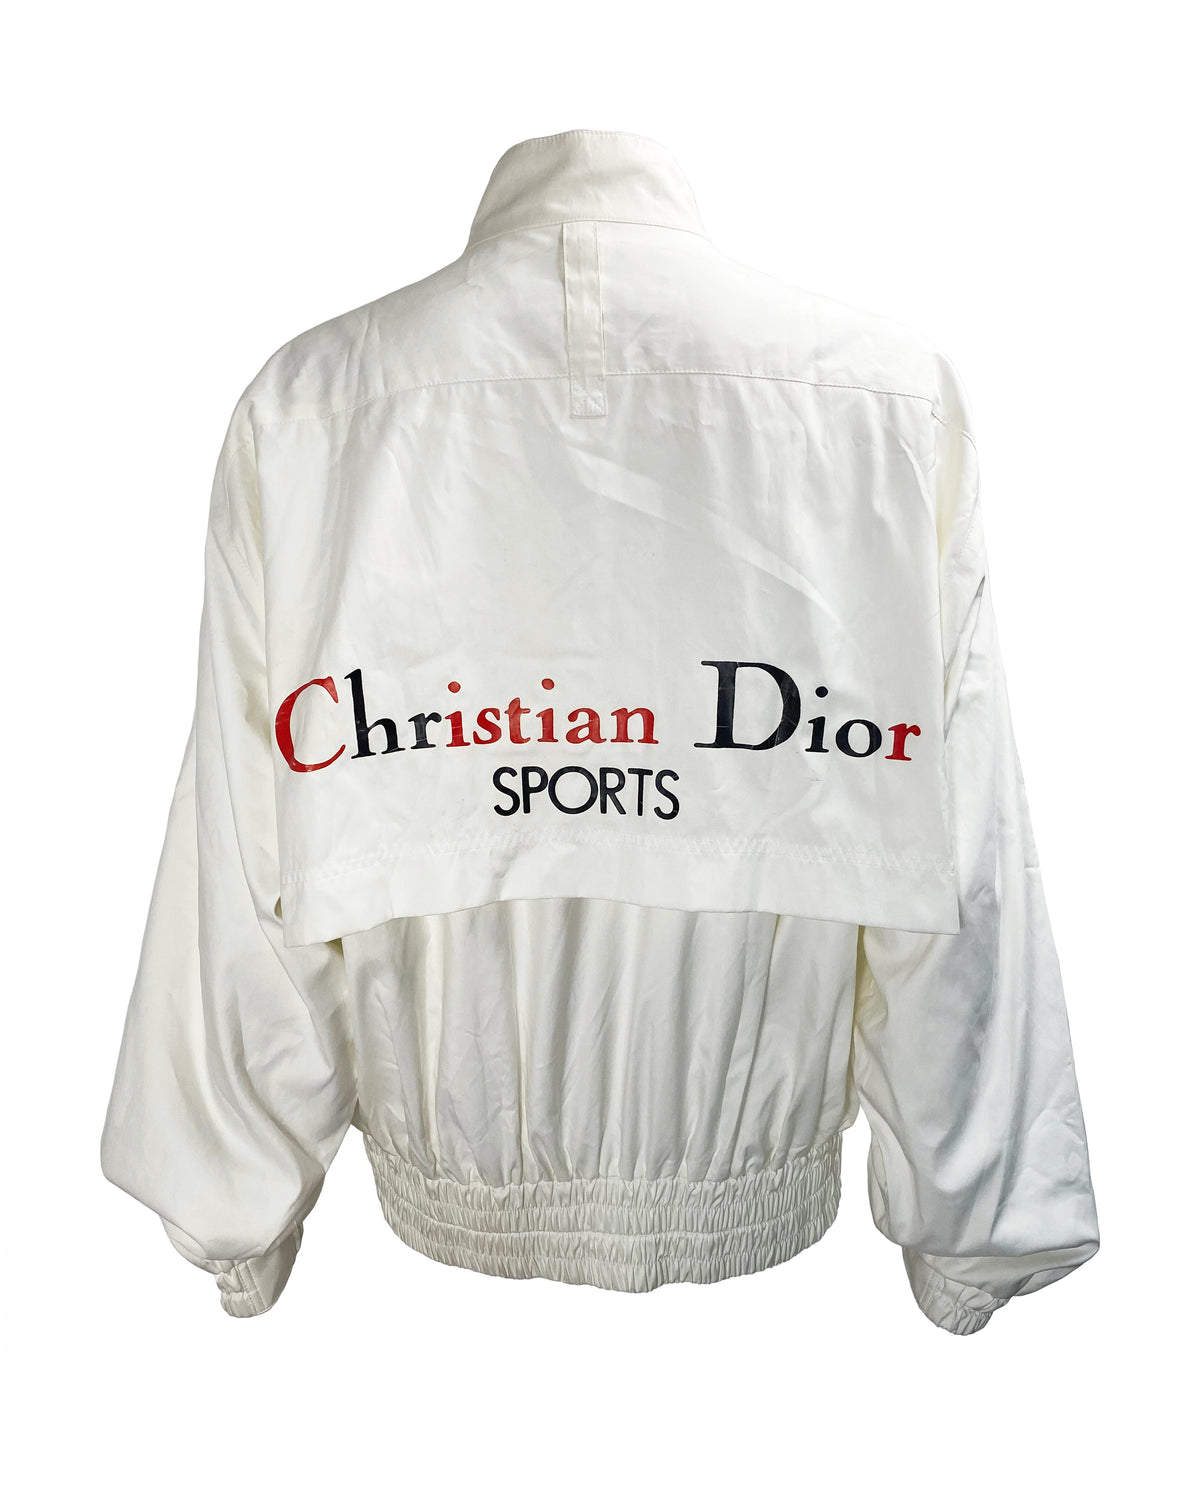 FRUIT Vintage  rare Christian Dior Sport Logo bomber jacket from the 1980s. It features a classic 1980s bomber jacket cut with over flap and large Christian Dior Sport text logo printed at rear.